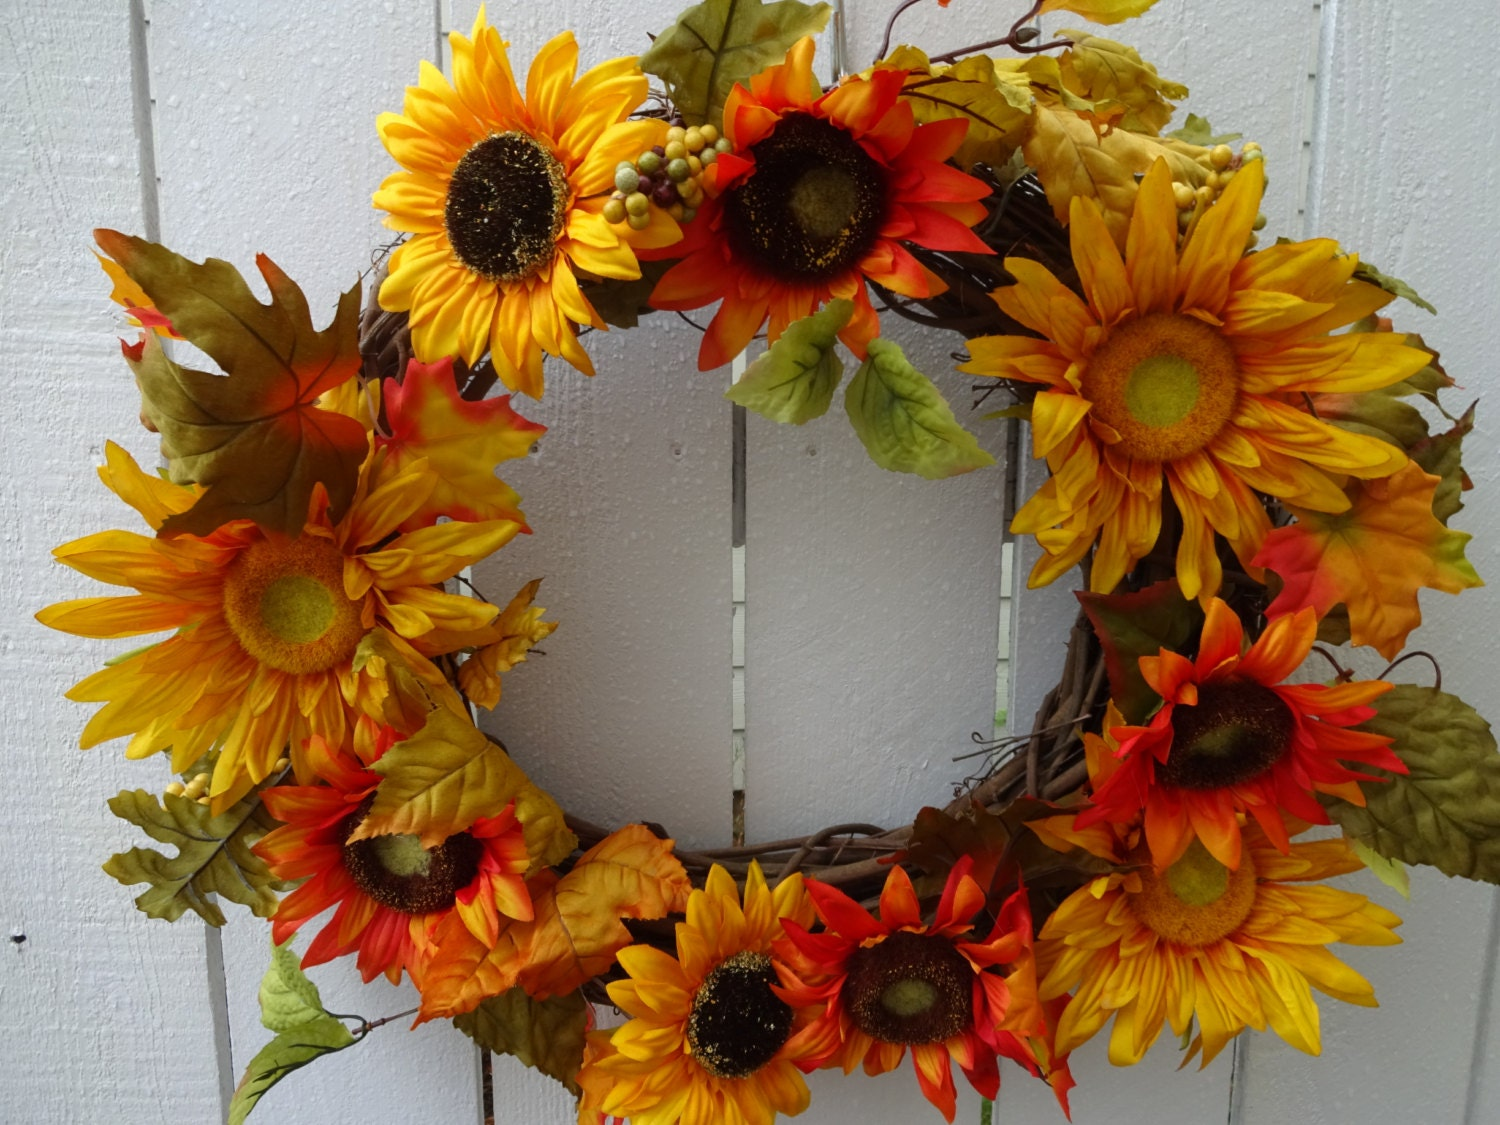 Sunflower Wreath Sale Autumn Wreath Home Decor Front